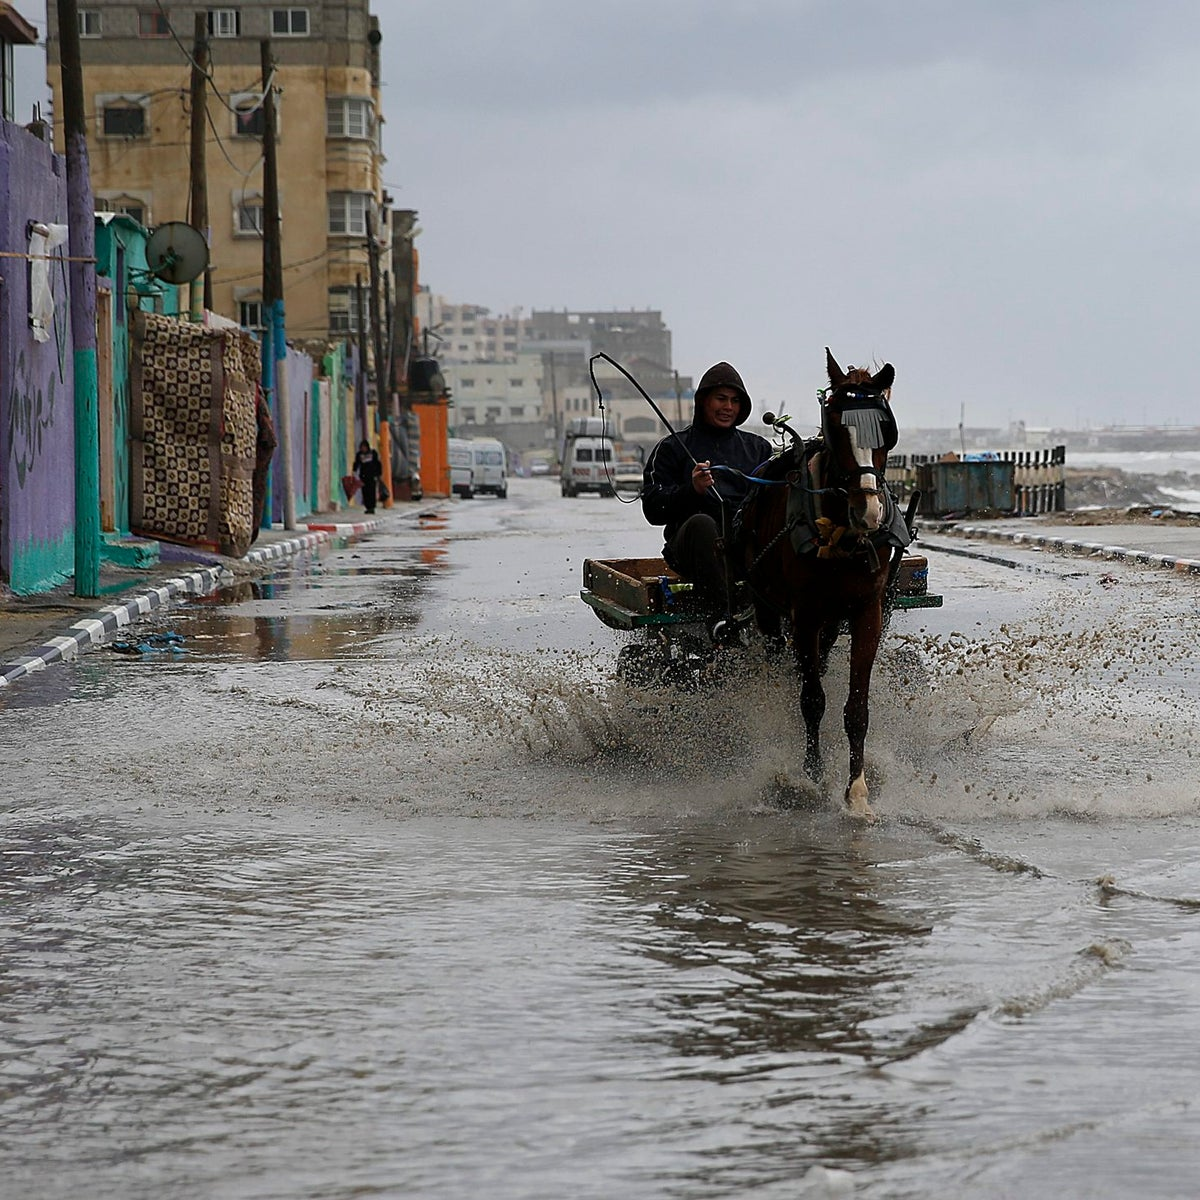 A Palestinian man drives his horse-drawn cart through a flooded beach-side street, in Gaza City, Tuesday, January 26, 2016.